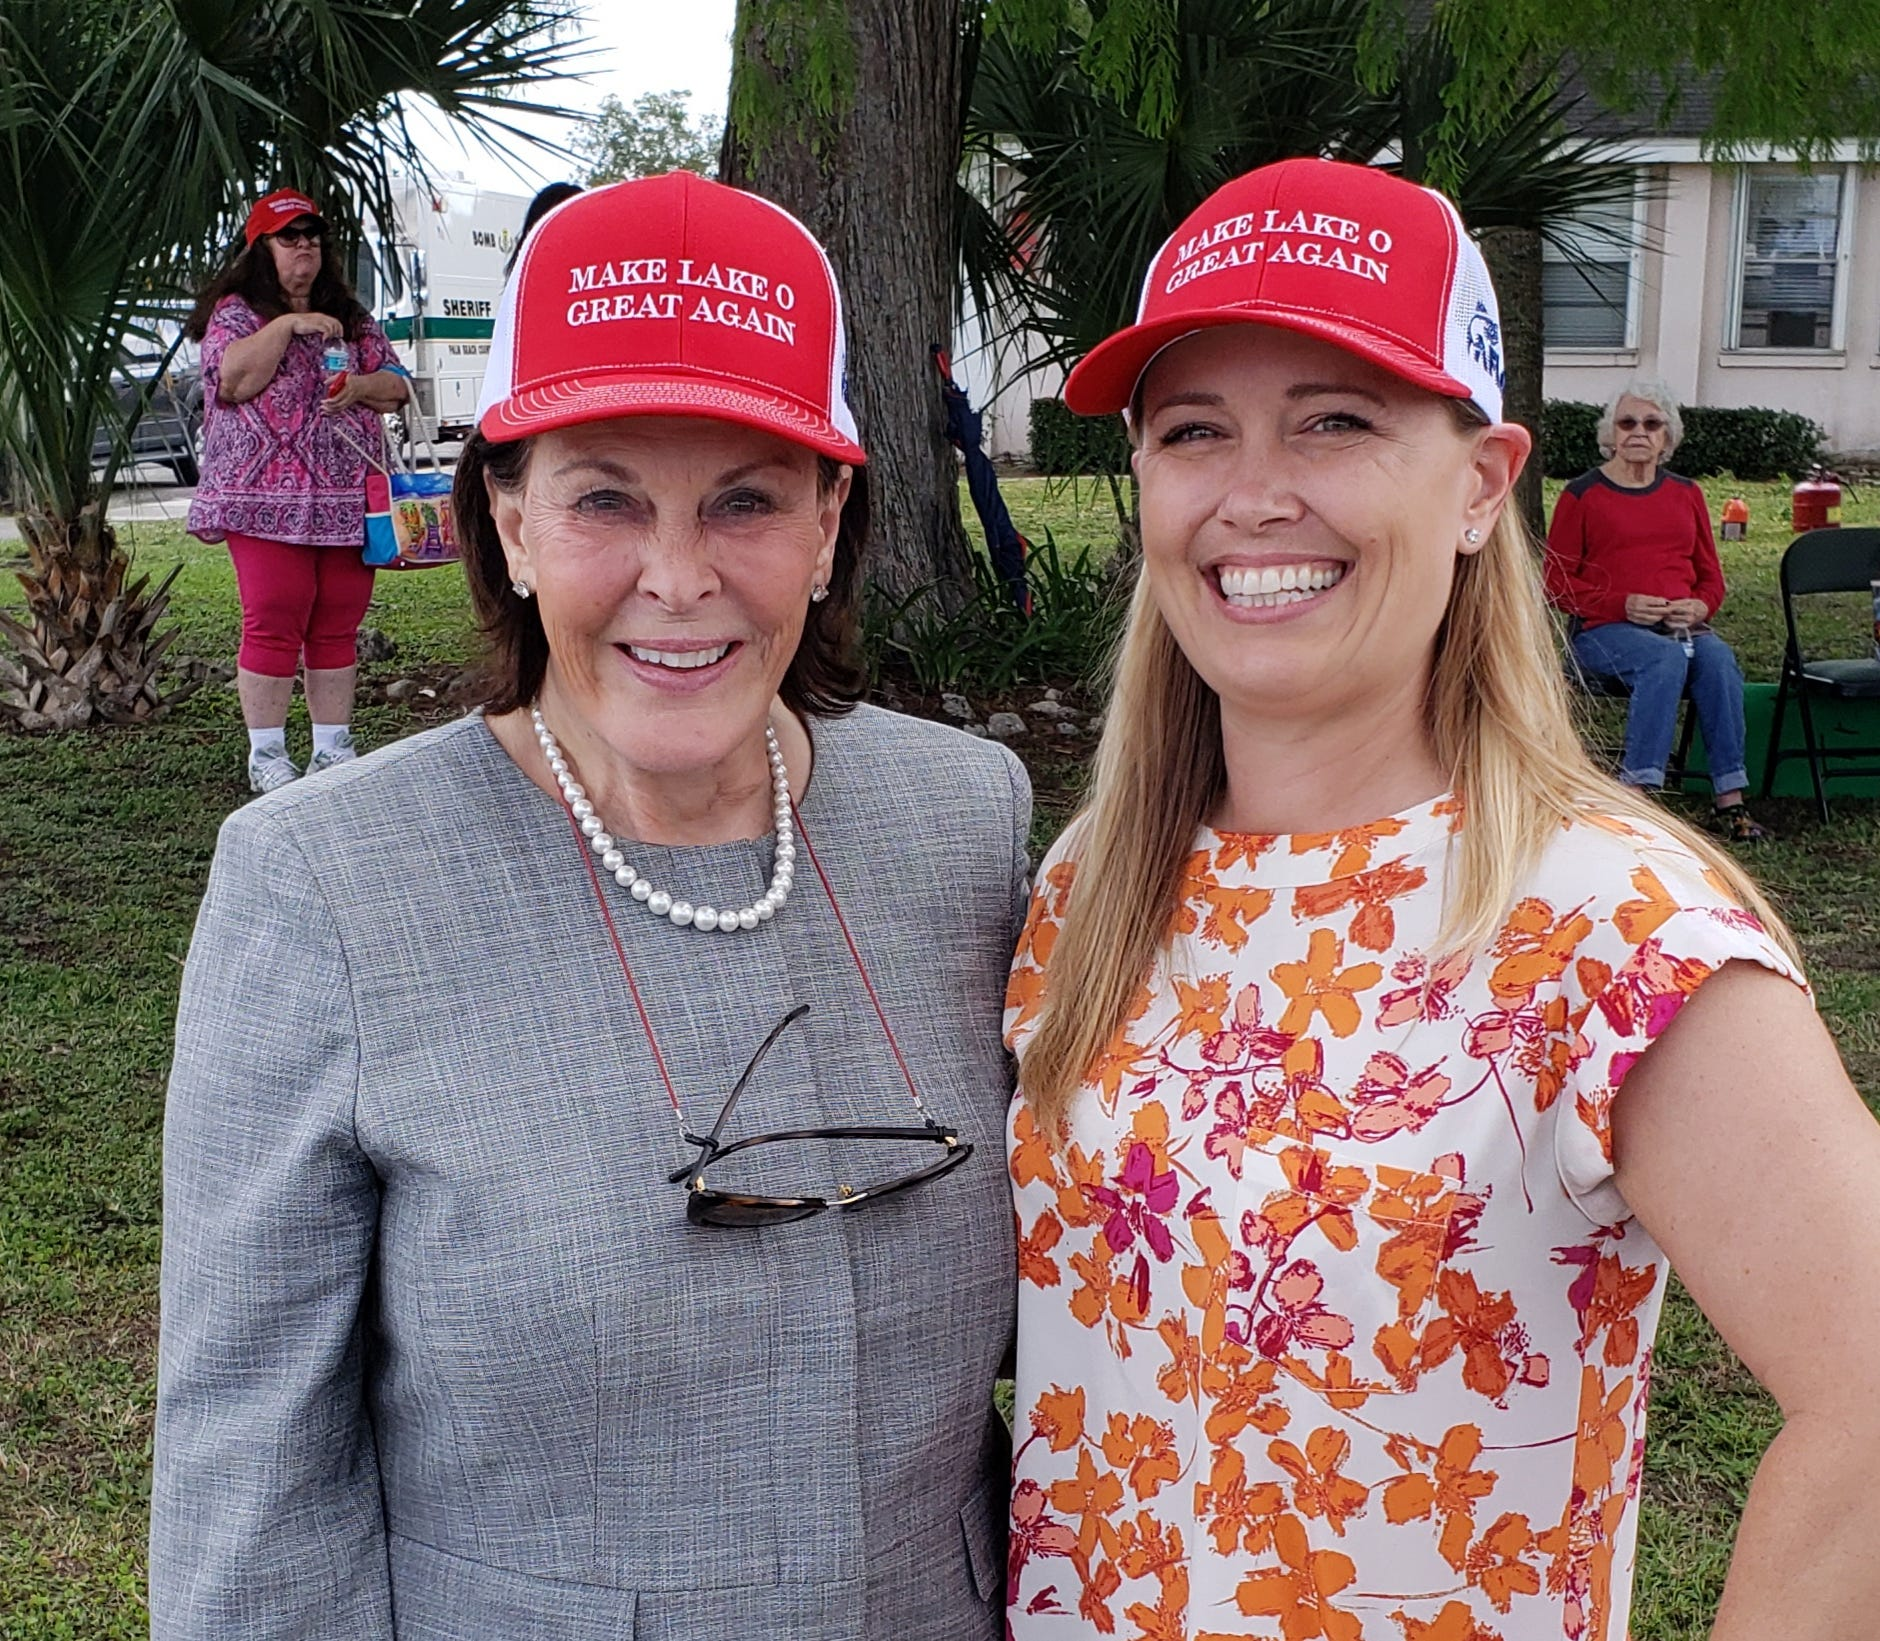 Make Lake O Great Again hats, modeled here by Mary Ann Martin of Clewiston (left) and Nyla Pipes of Fort Pierce, were very popular Friday during President Donald Trump's visit to Canal Point.